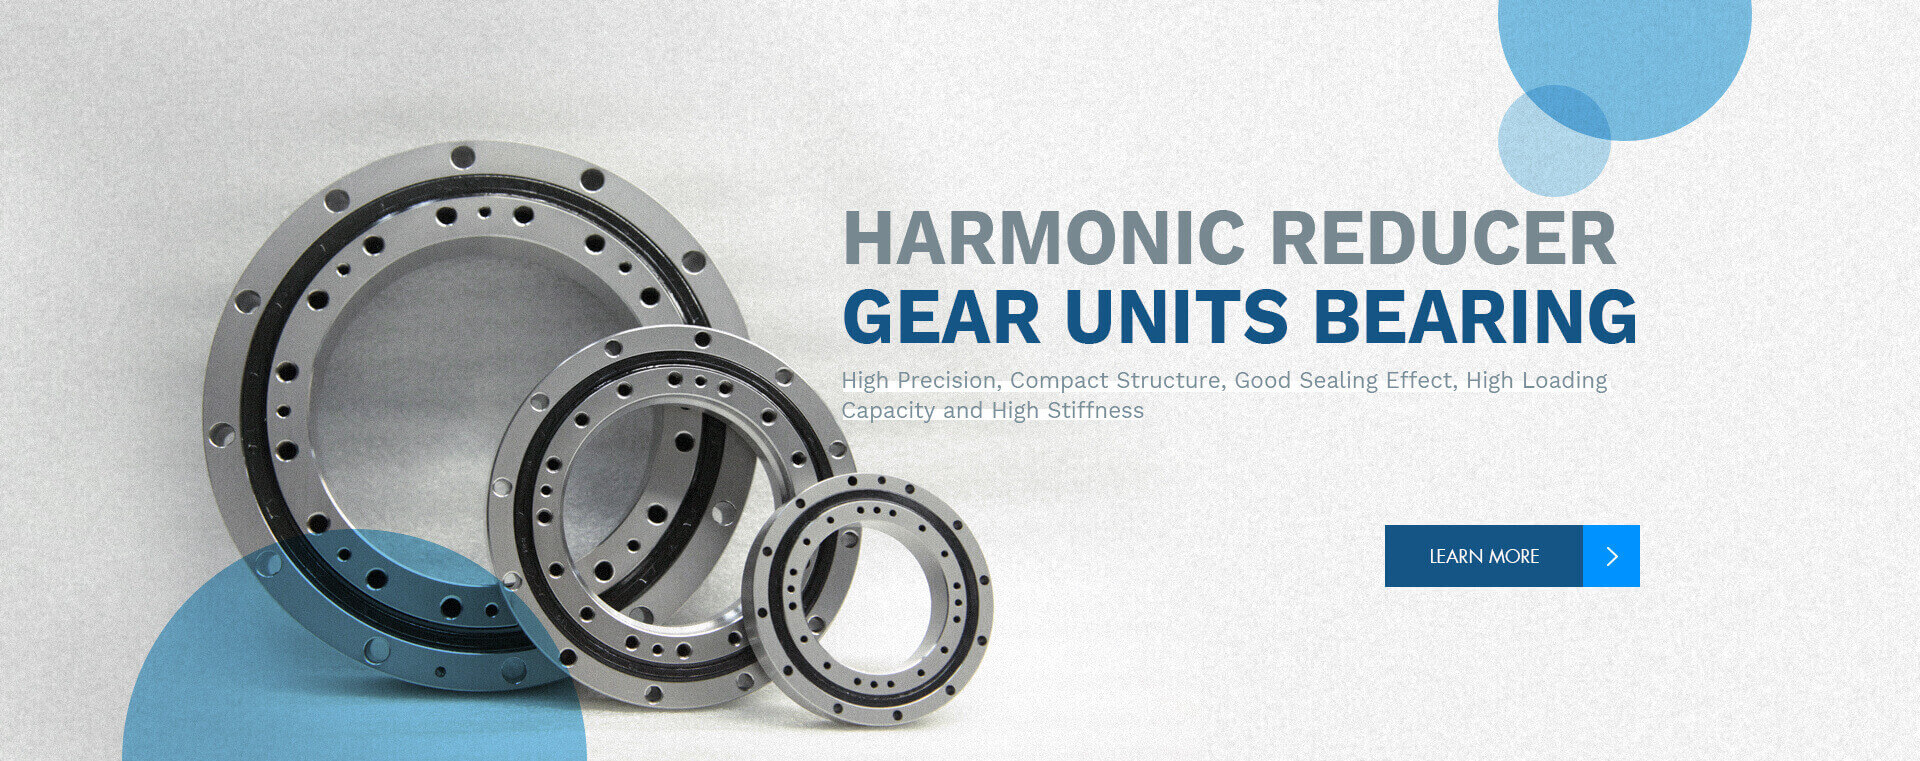 harmonic reducer gear units bearings